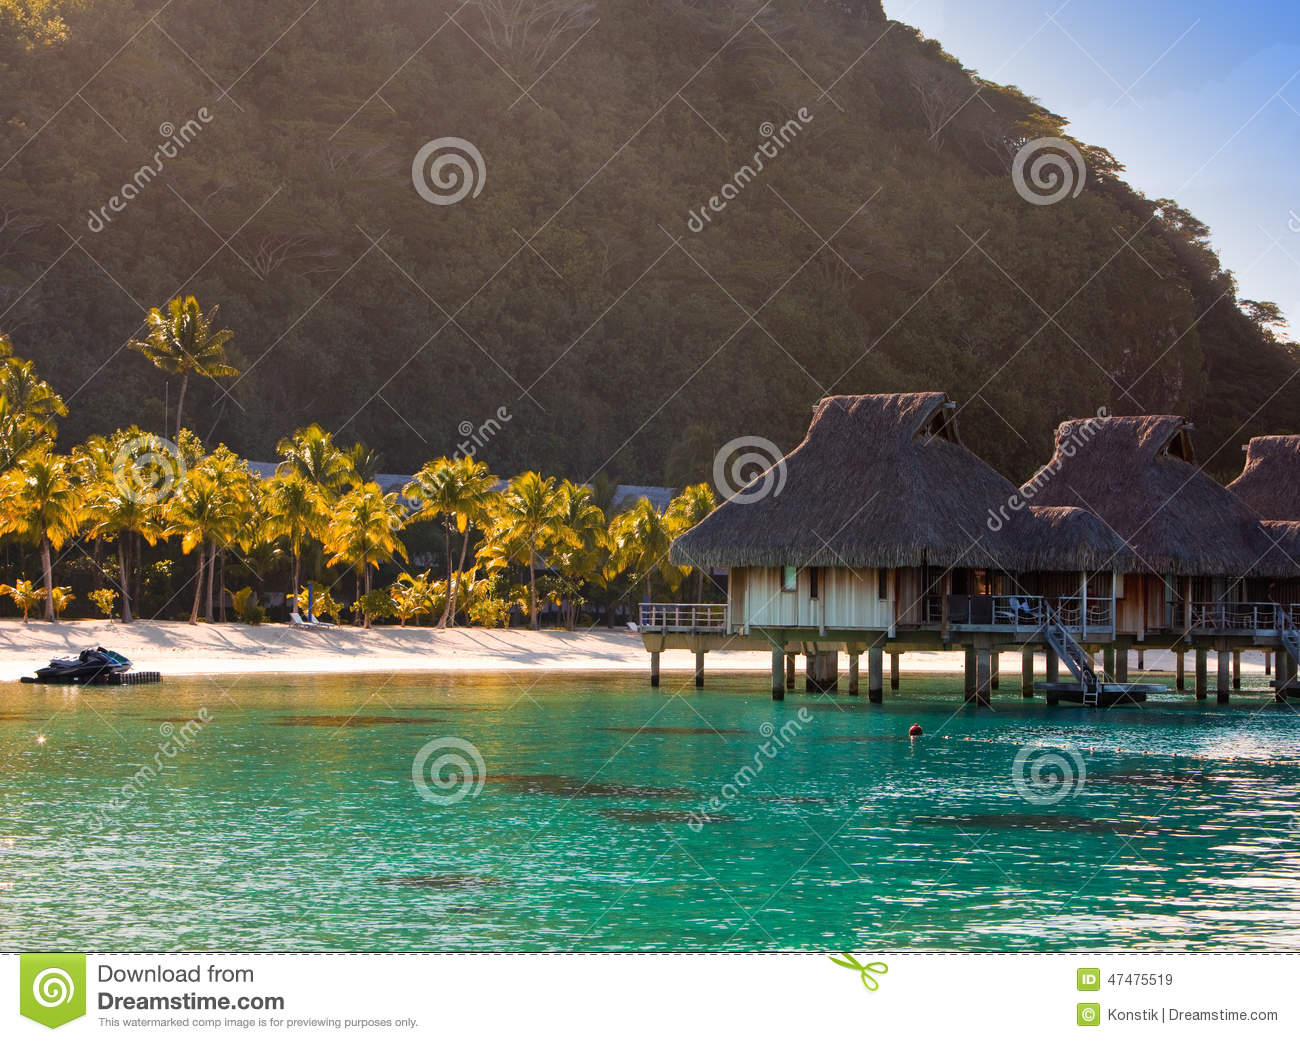 Tropical Island Sun: Morning On The Tropical Island. The Sun Ascends Behind The